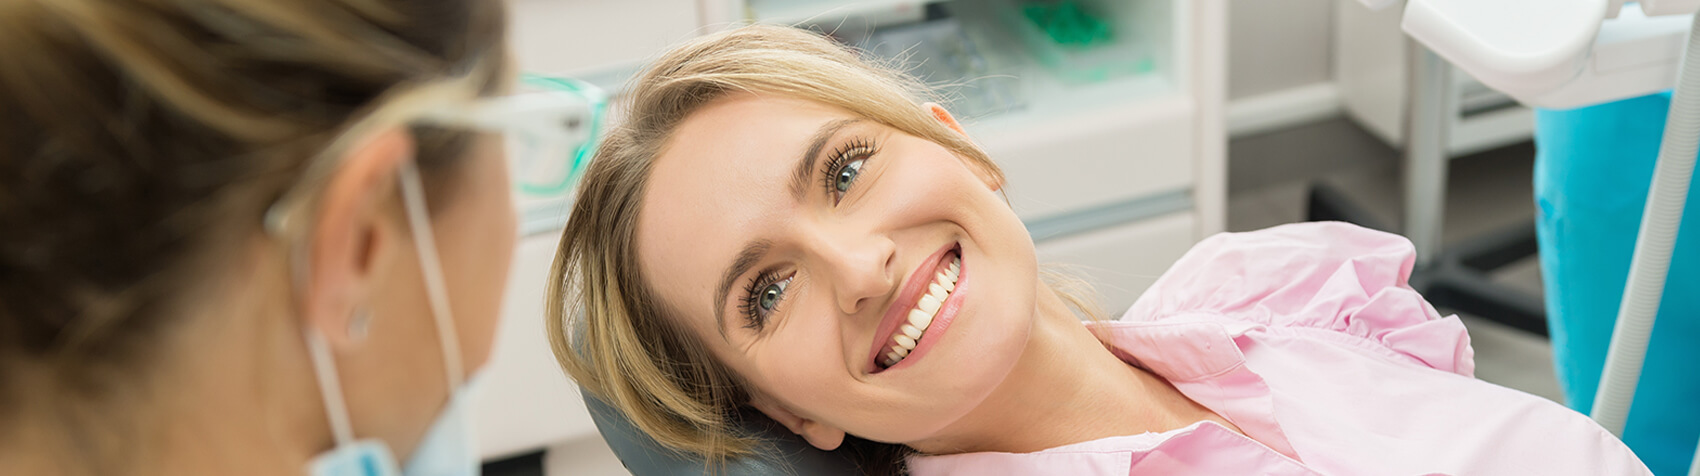 Patient smiling up at dentist during exam